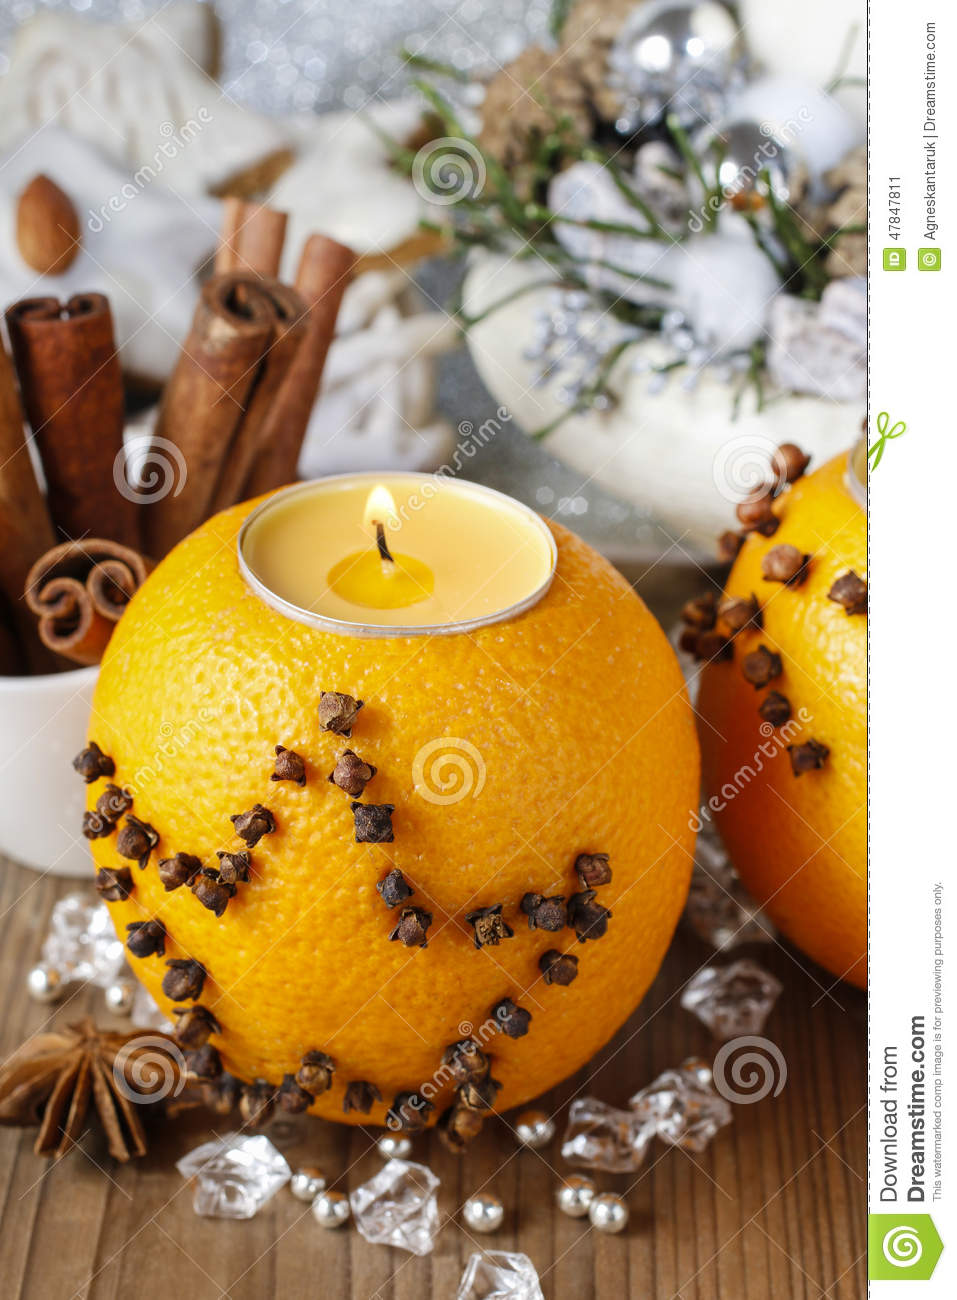 boule orange de sachet aromatique avec la bougie d cor e des clous de girofle image stock. Black Bedroom Furniture Sets. Home Design Ideas